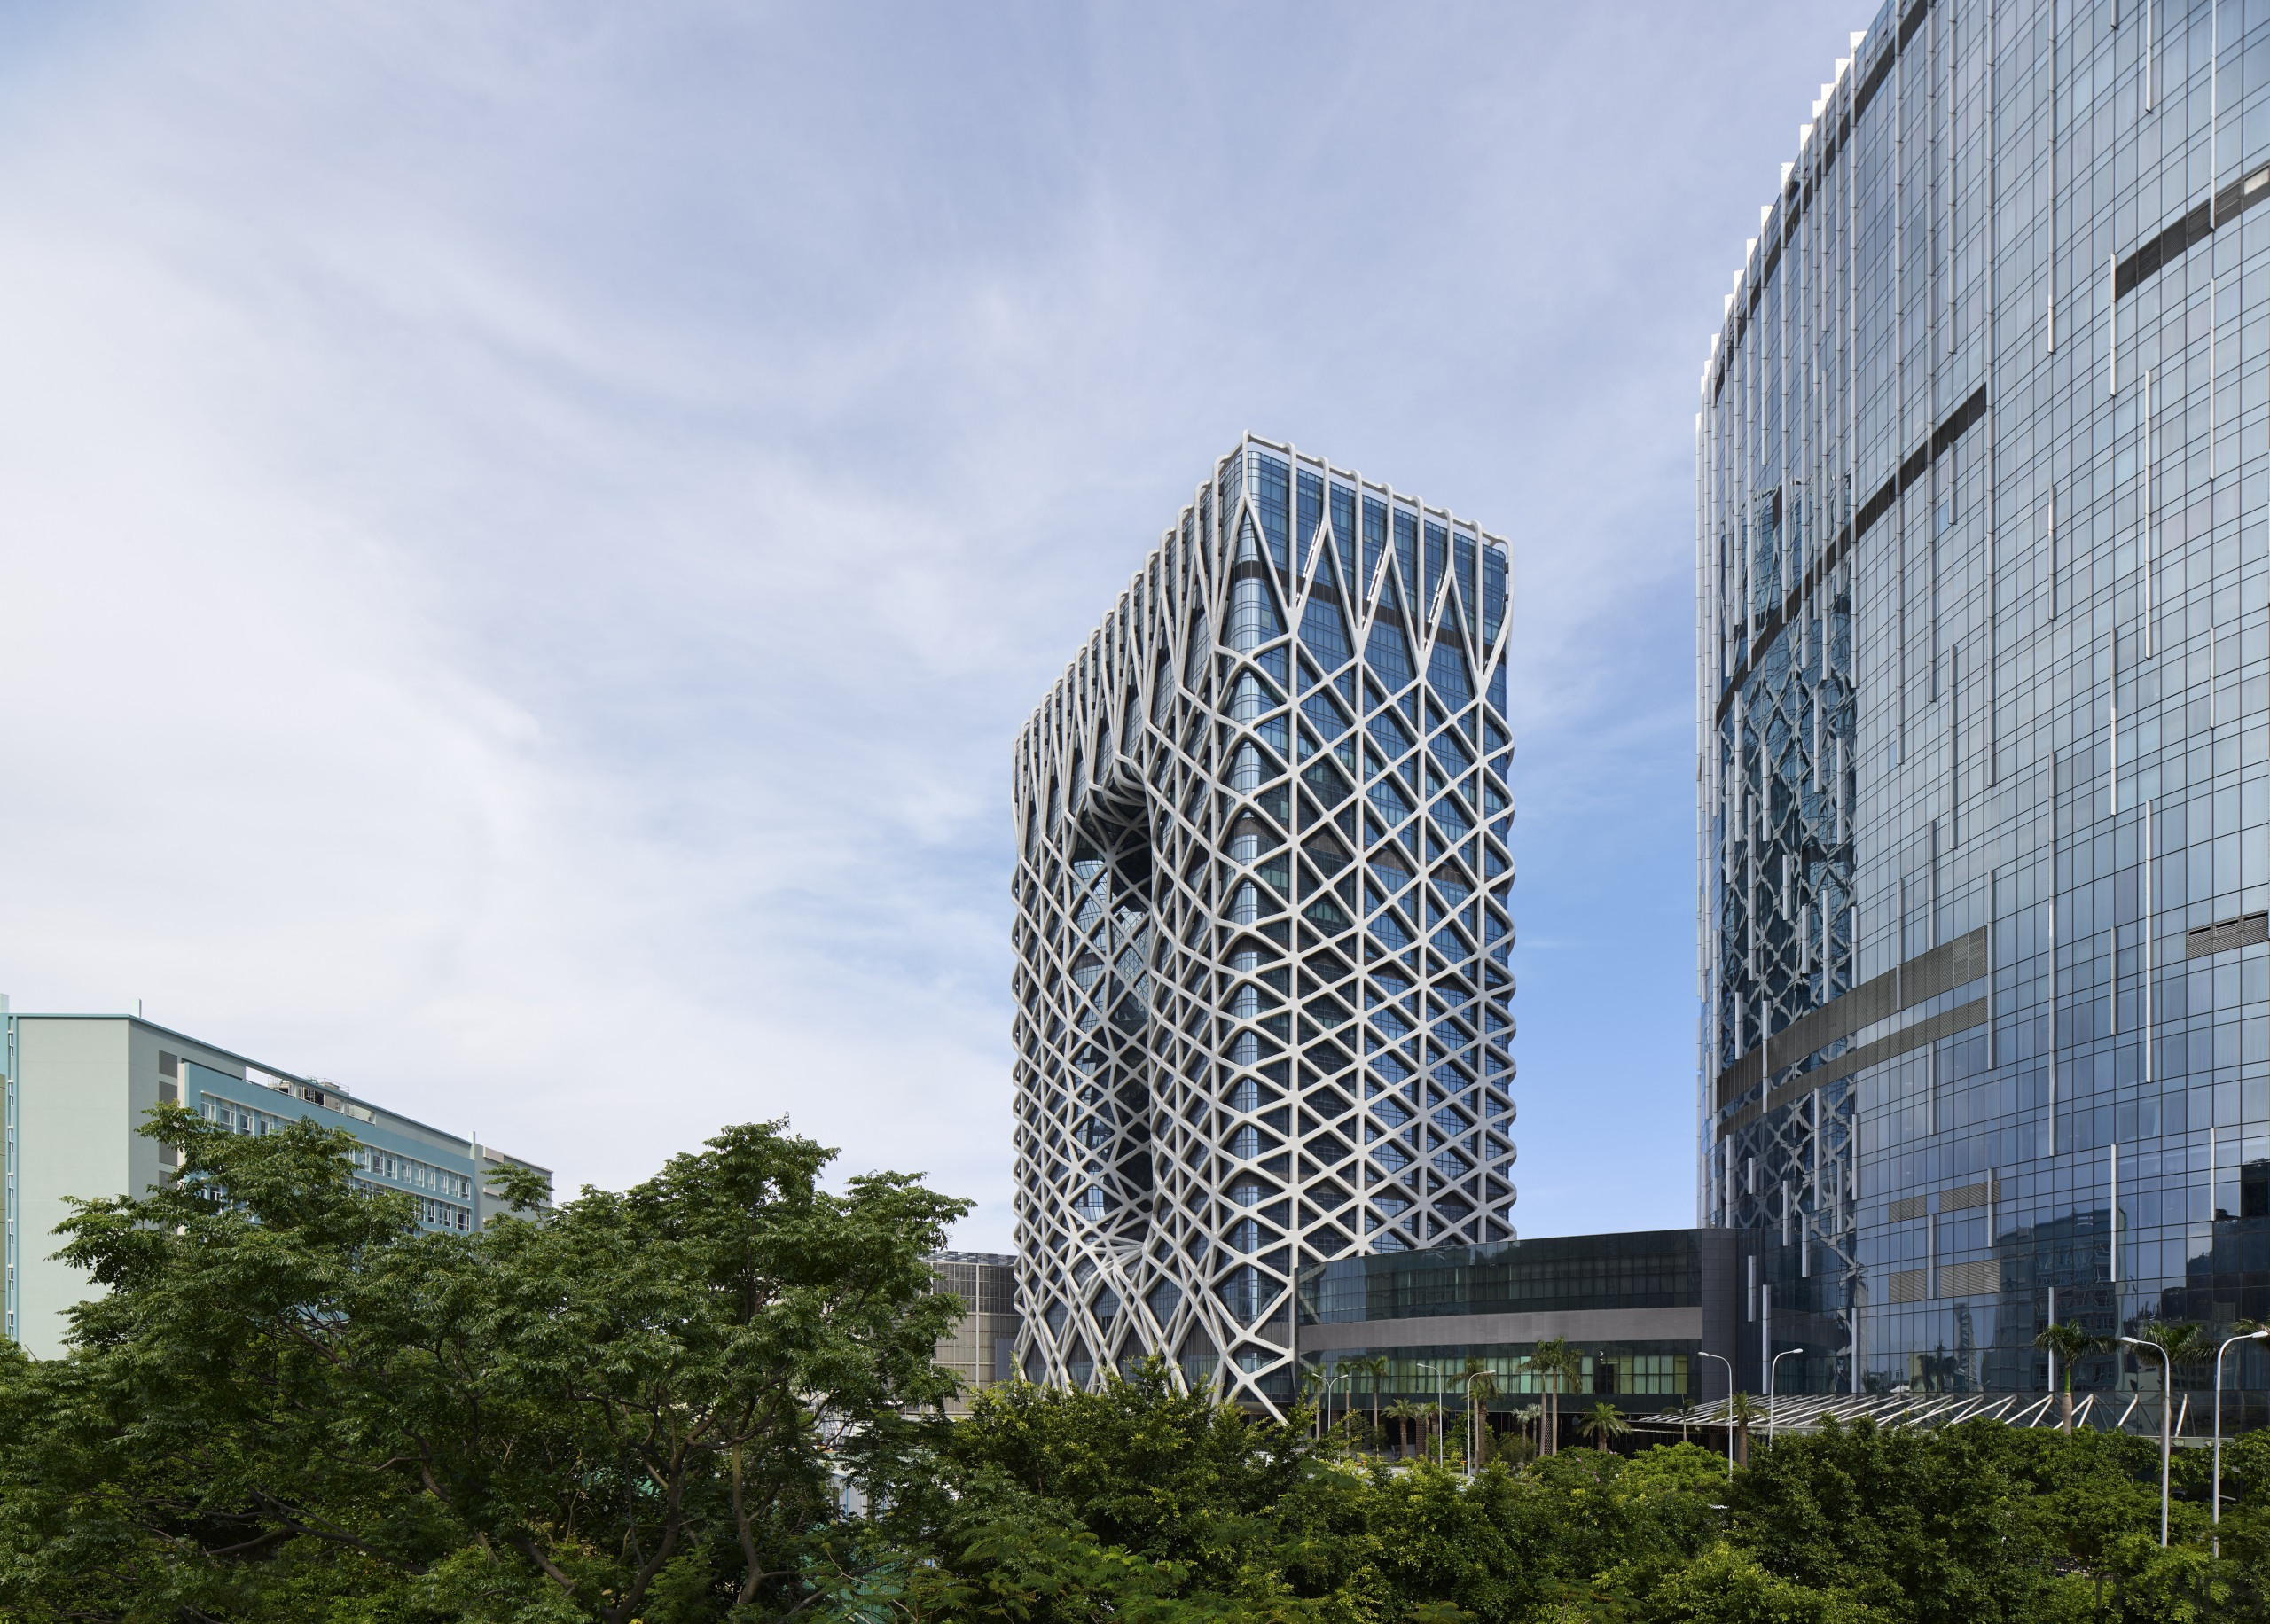 The glazed facade behind Morpheus Hotel's exoskeleton comprises architecture, building, city, condominium, corporate headquarters, daytime, facade, headquarters, metropolis, metropolitan area, mixed use, residential area, sky, skyscraper, tower block, tree, urban area, white